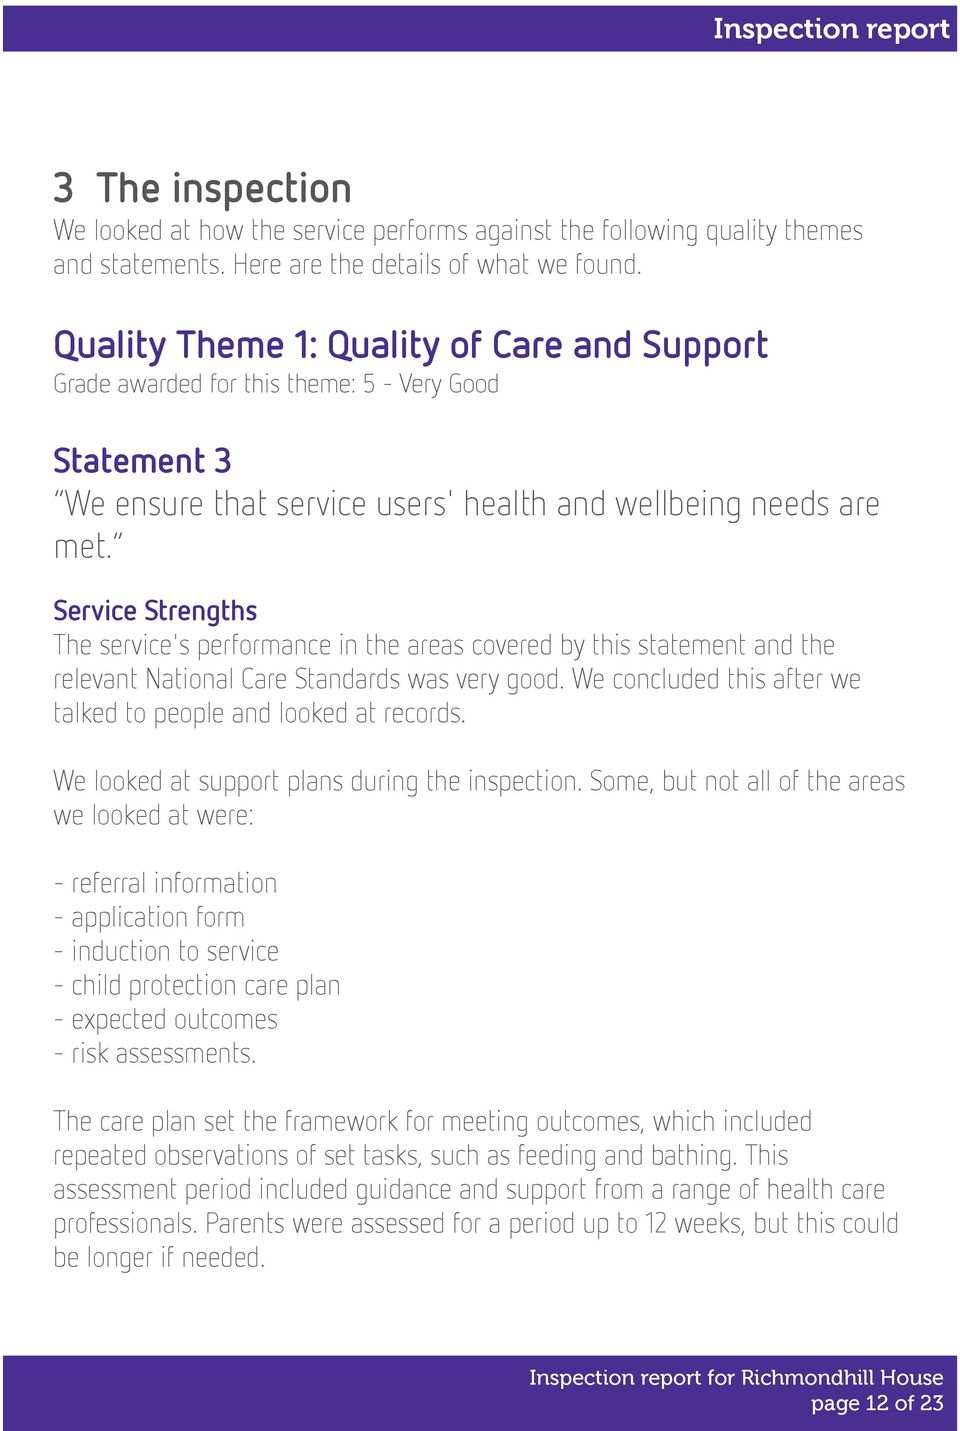 Service Strengths The service's performance in the areas covered by this statement and the relevant National Care Standards was very good.